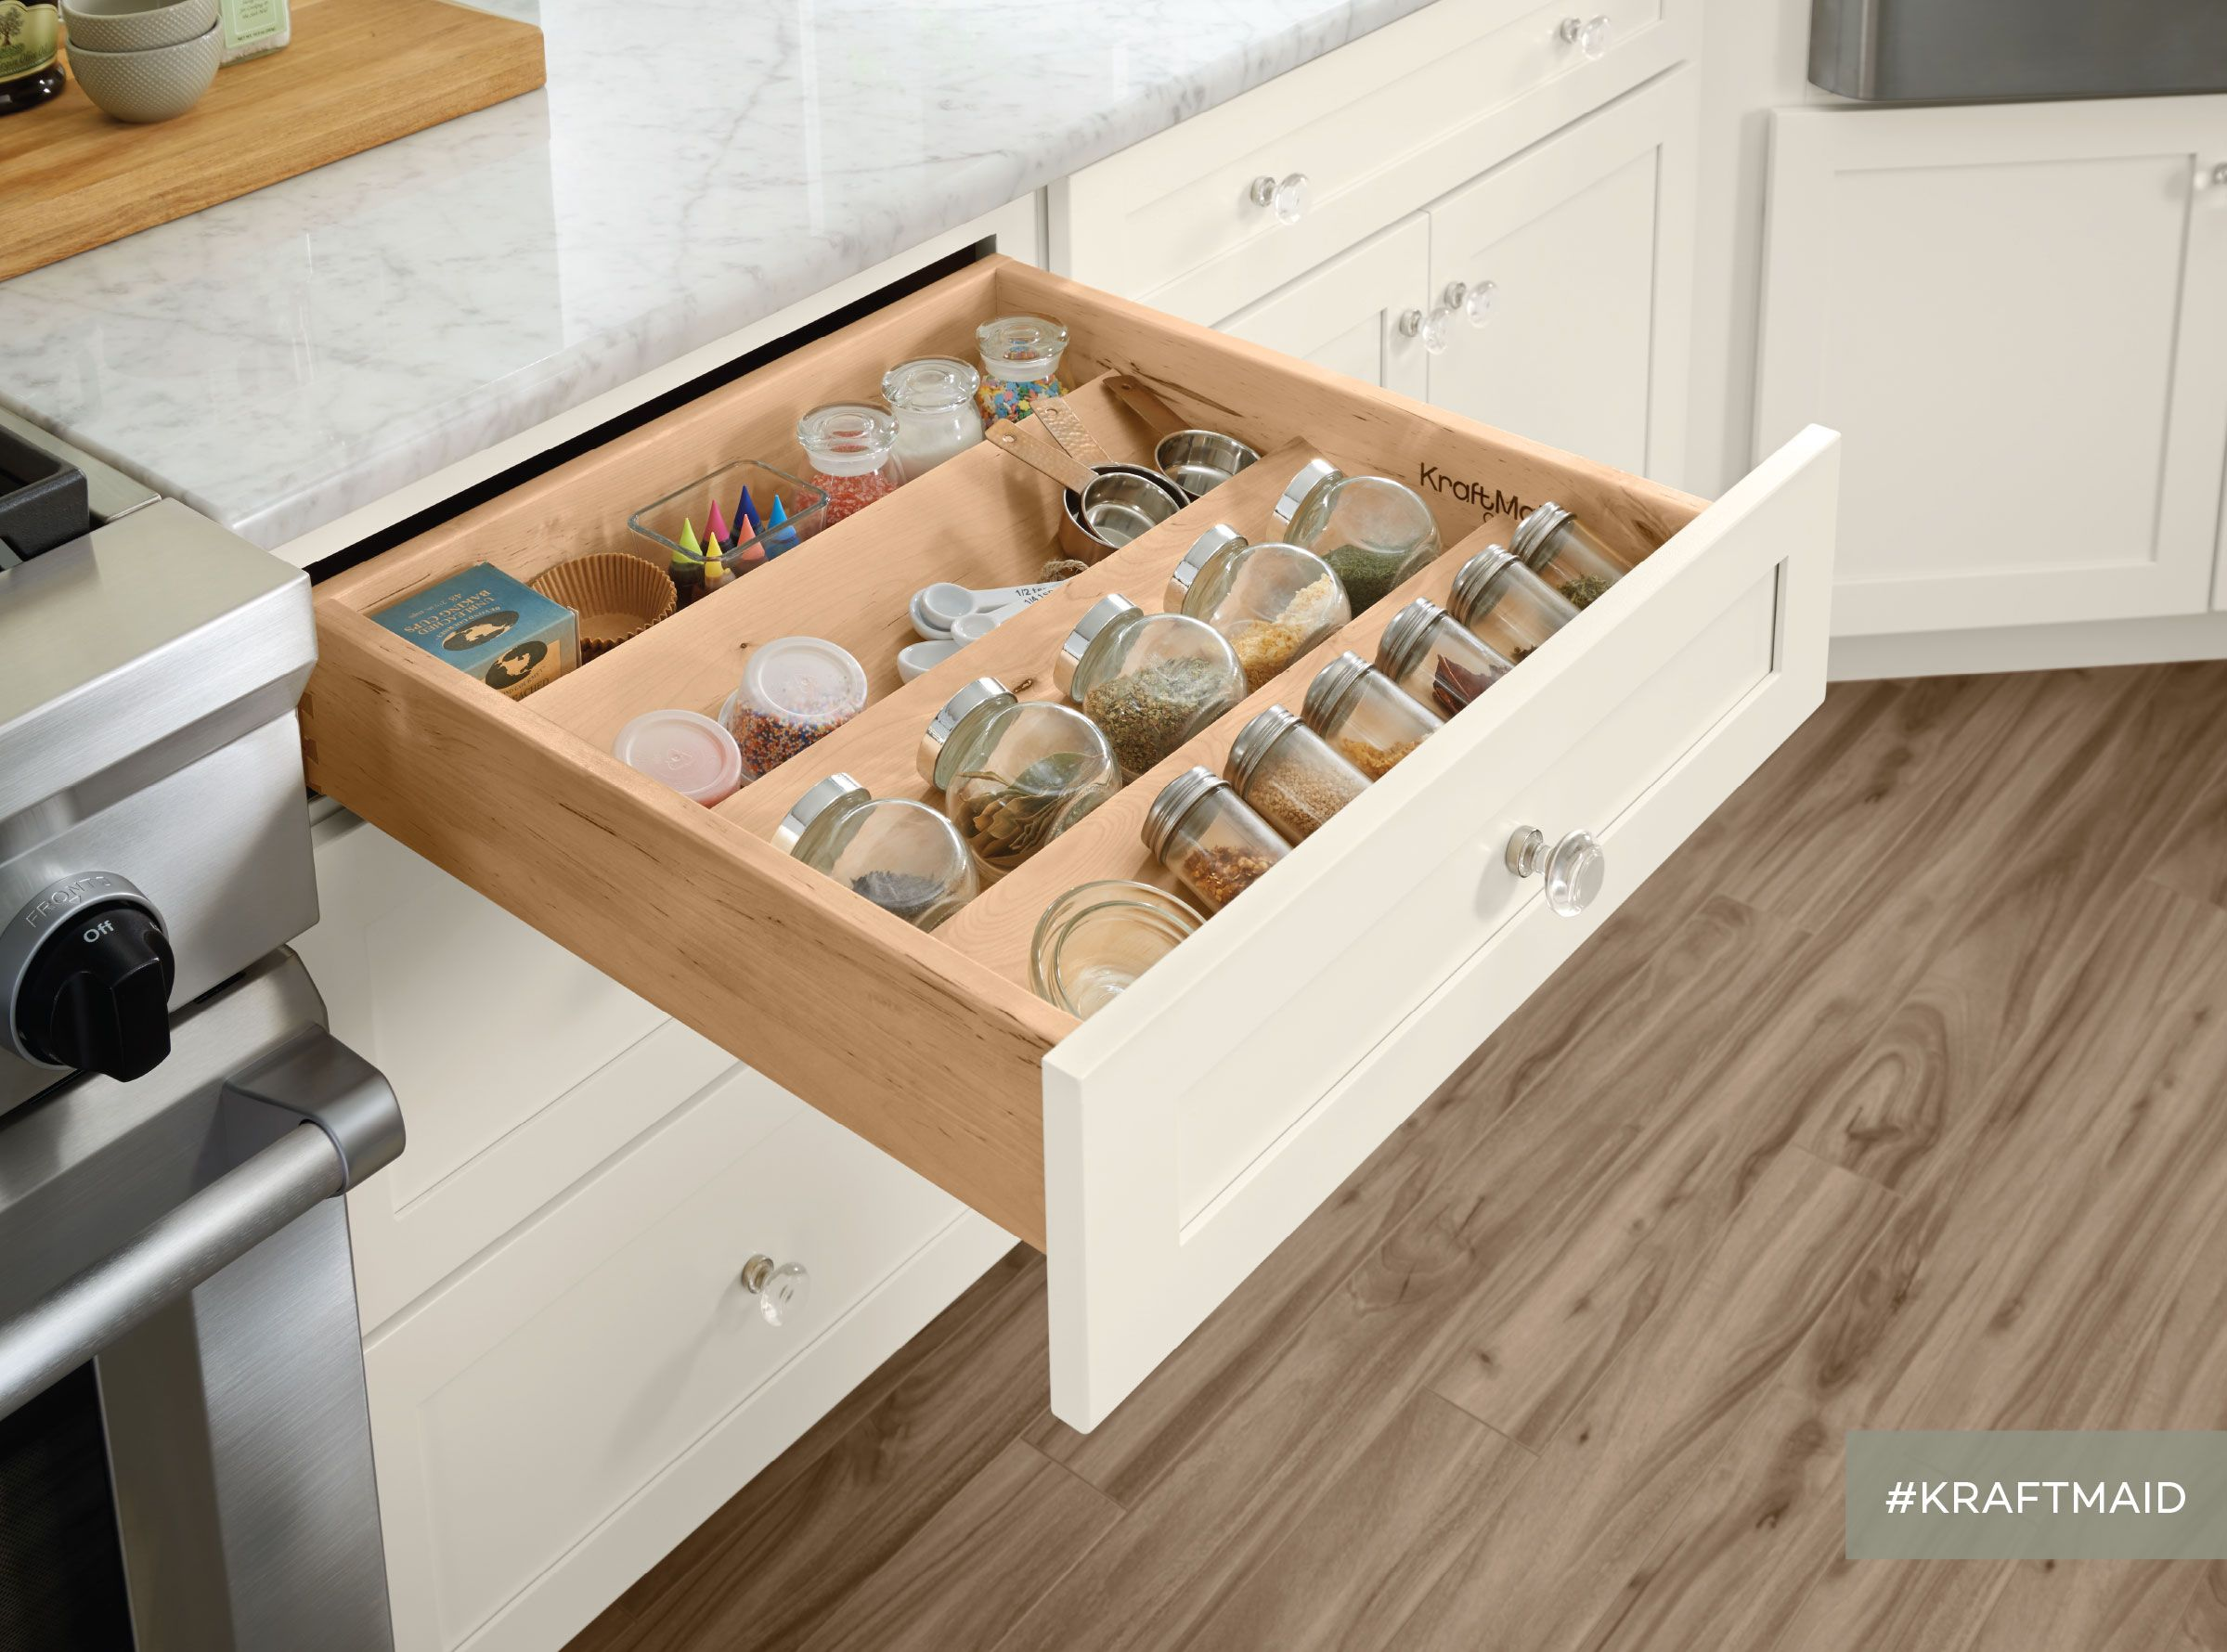 a spice drawer insert in the kitchen encourages cooks to